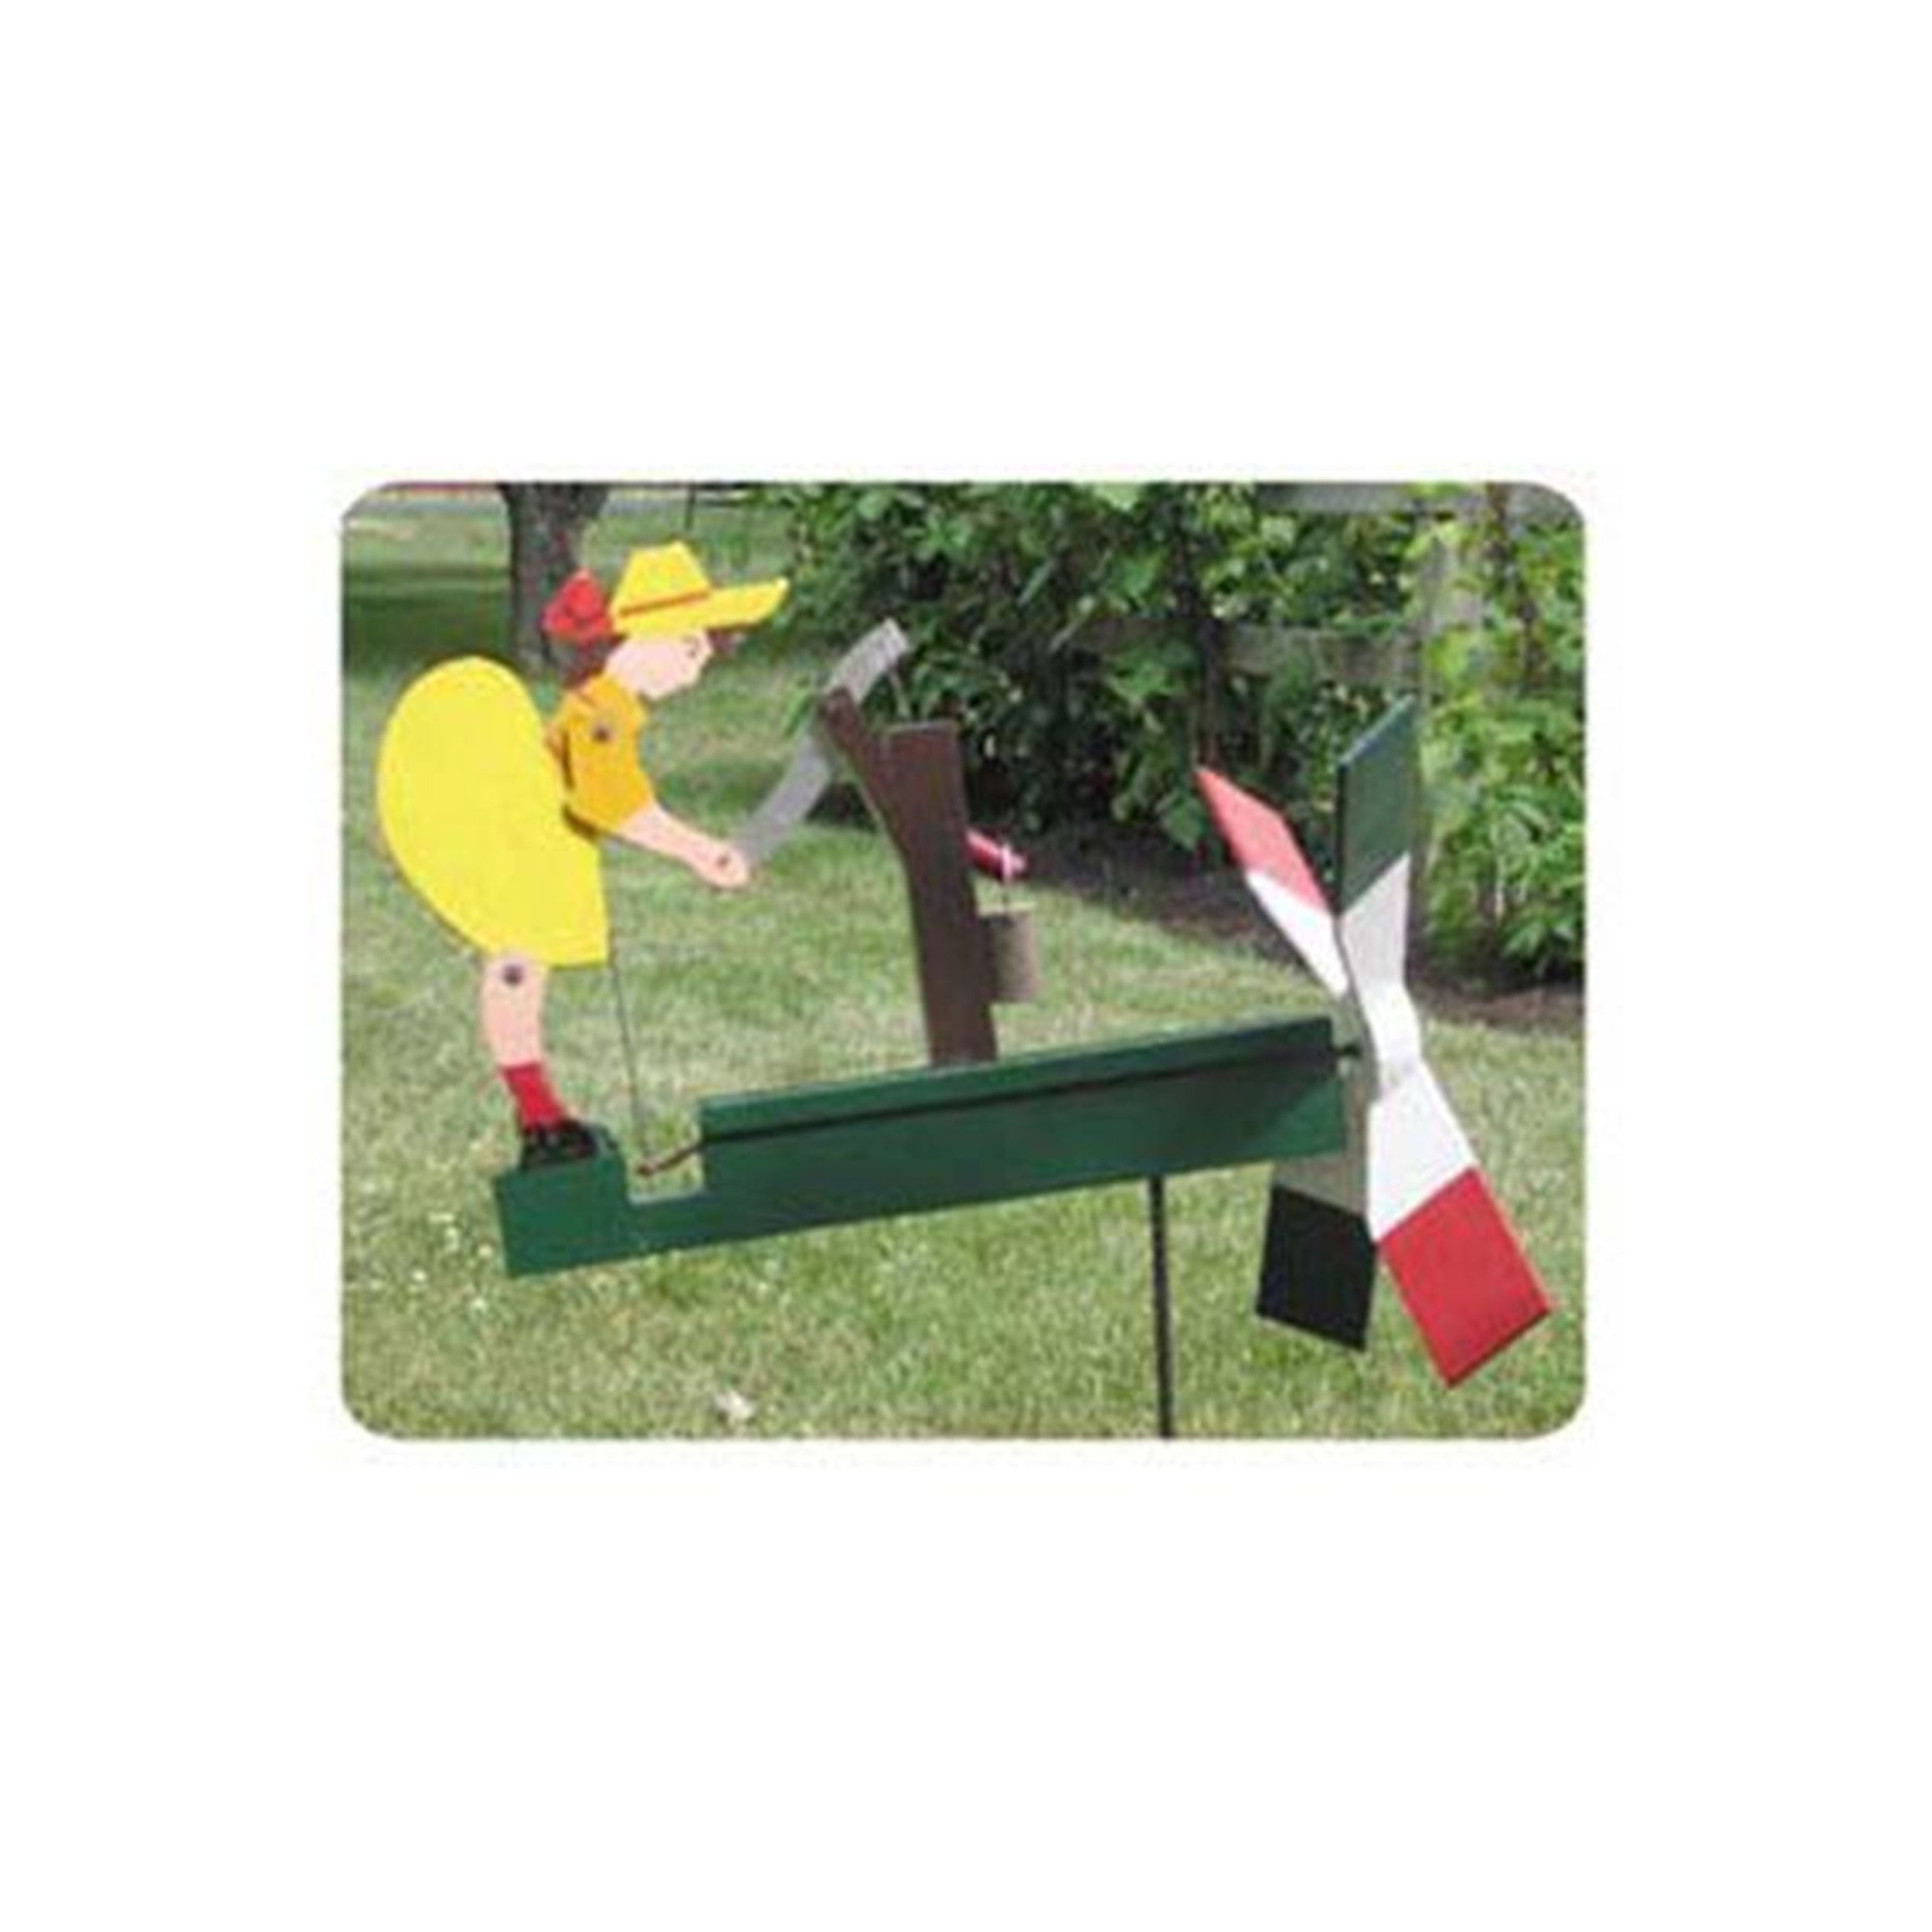 Woodcraft Woodworking Project Paper Plan To Build Waterpump Girl Whirligig In 2021 Wood Crafts Whirligigs Patterns Woodworking Projects